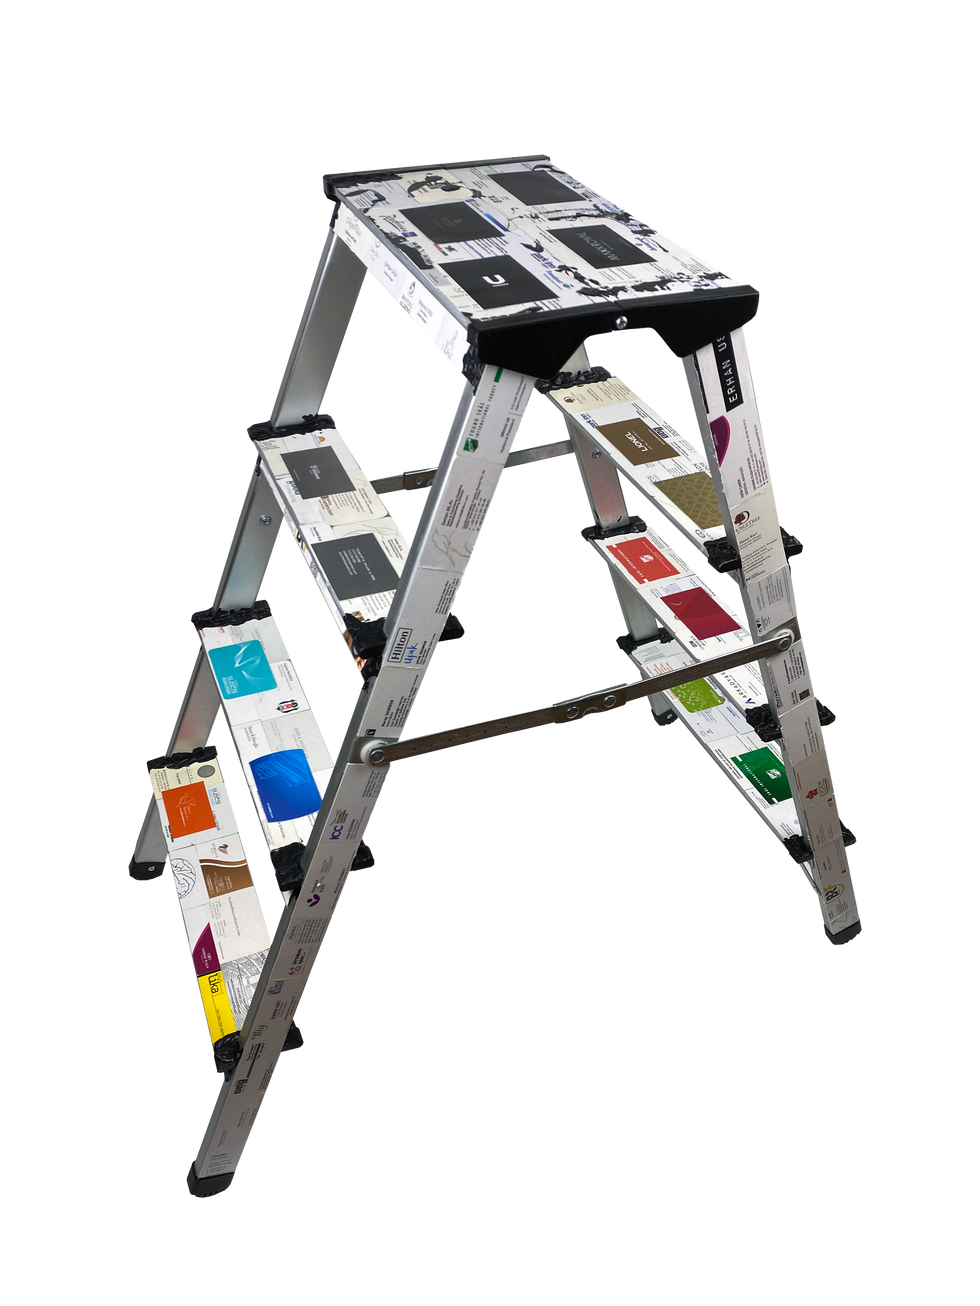 Disidentification / v 2020 / 35x88x88 cm / Paper, acrylic on aluminum / Aluminum ladder, covered with business cards. The black weld spots symbolize the greed of power and promotion in business. On top, there is only darkness and disidentification.